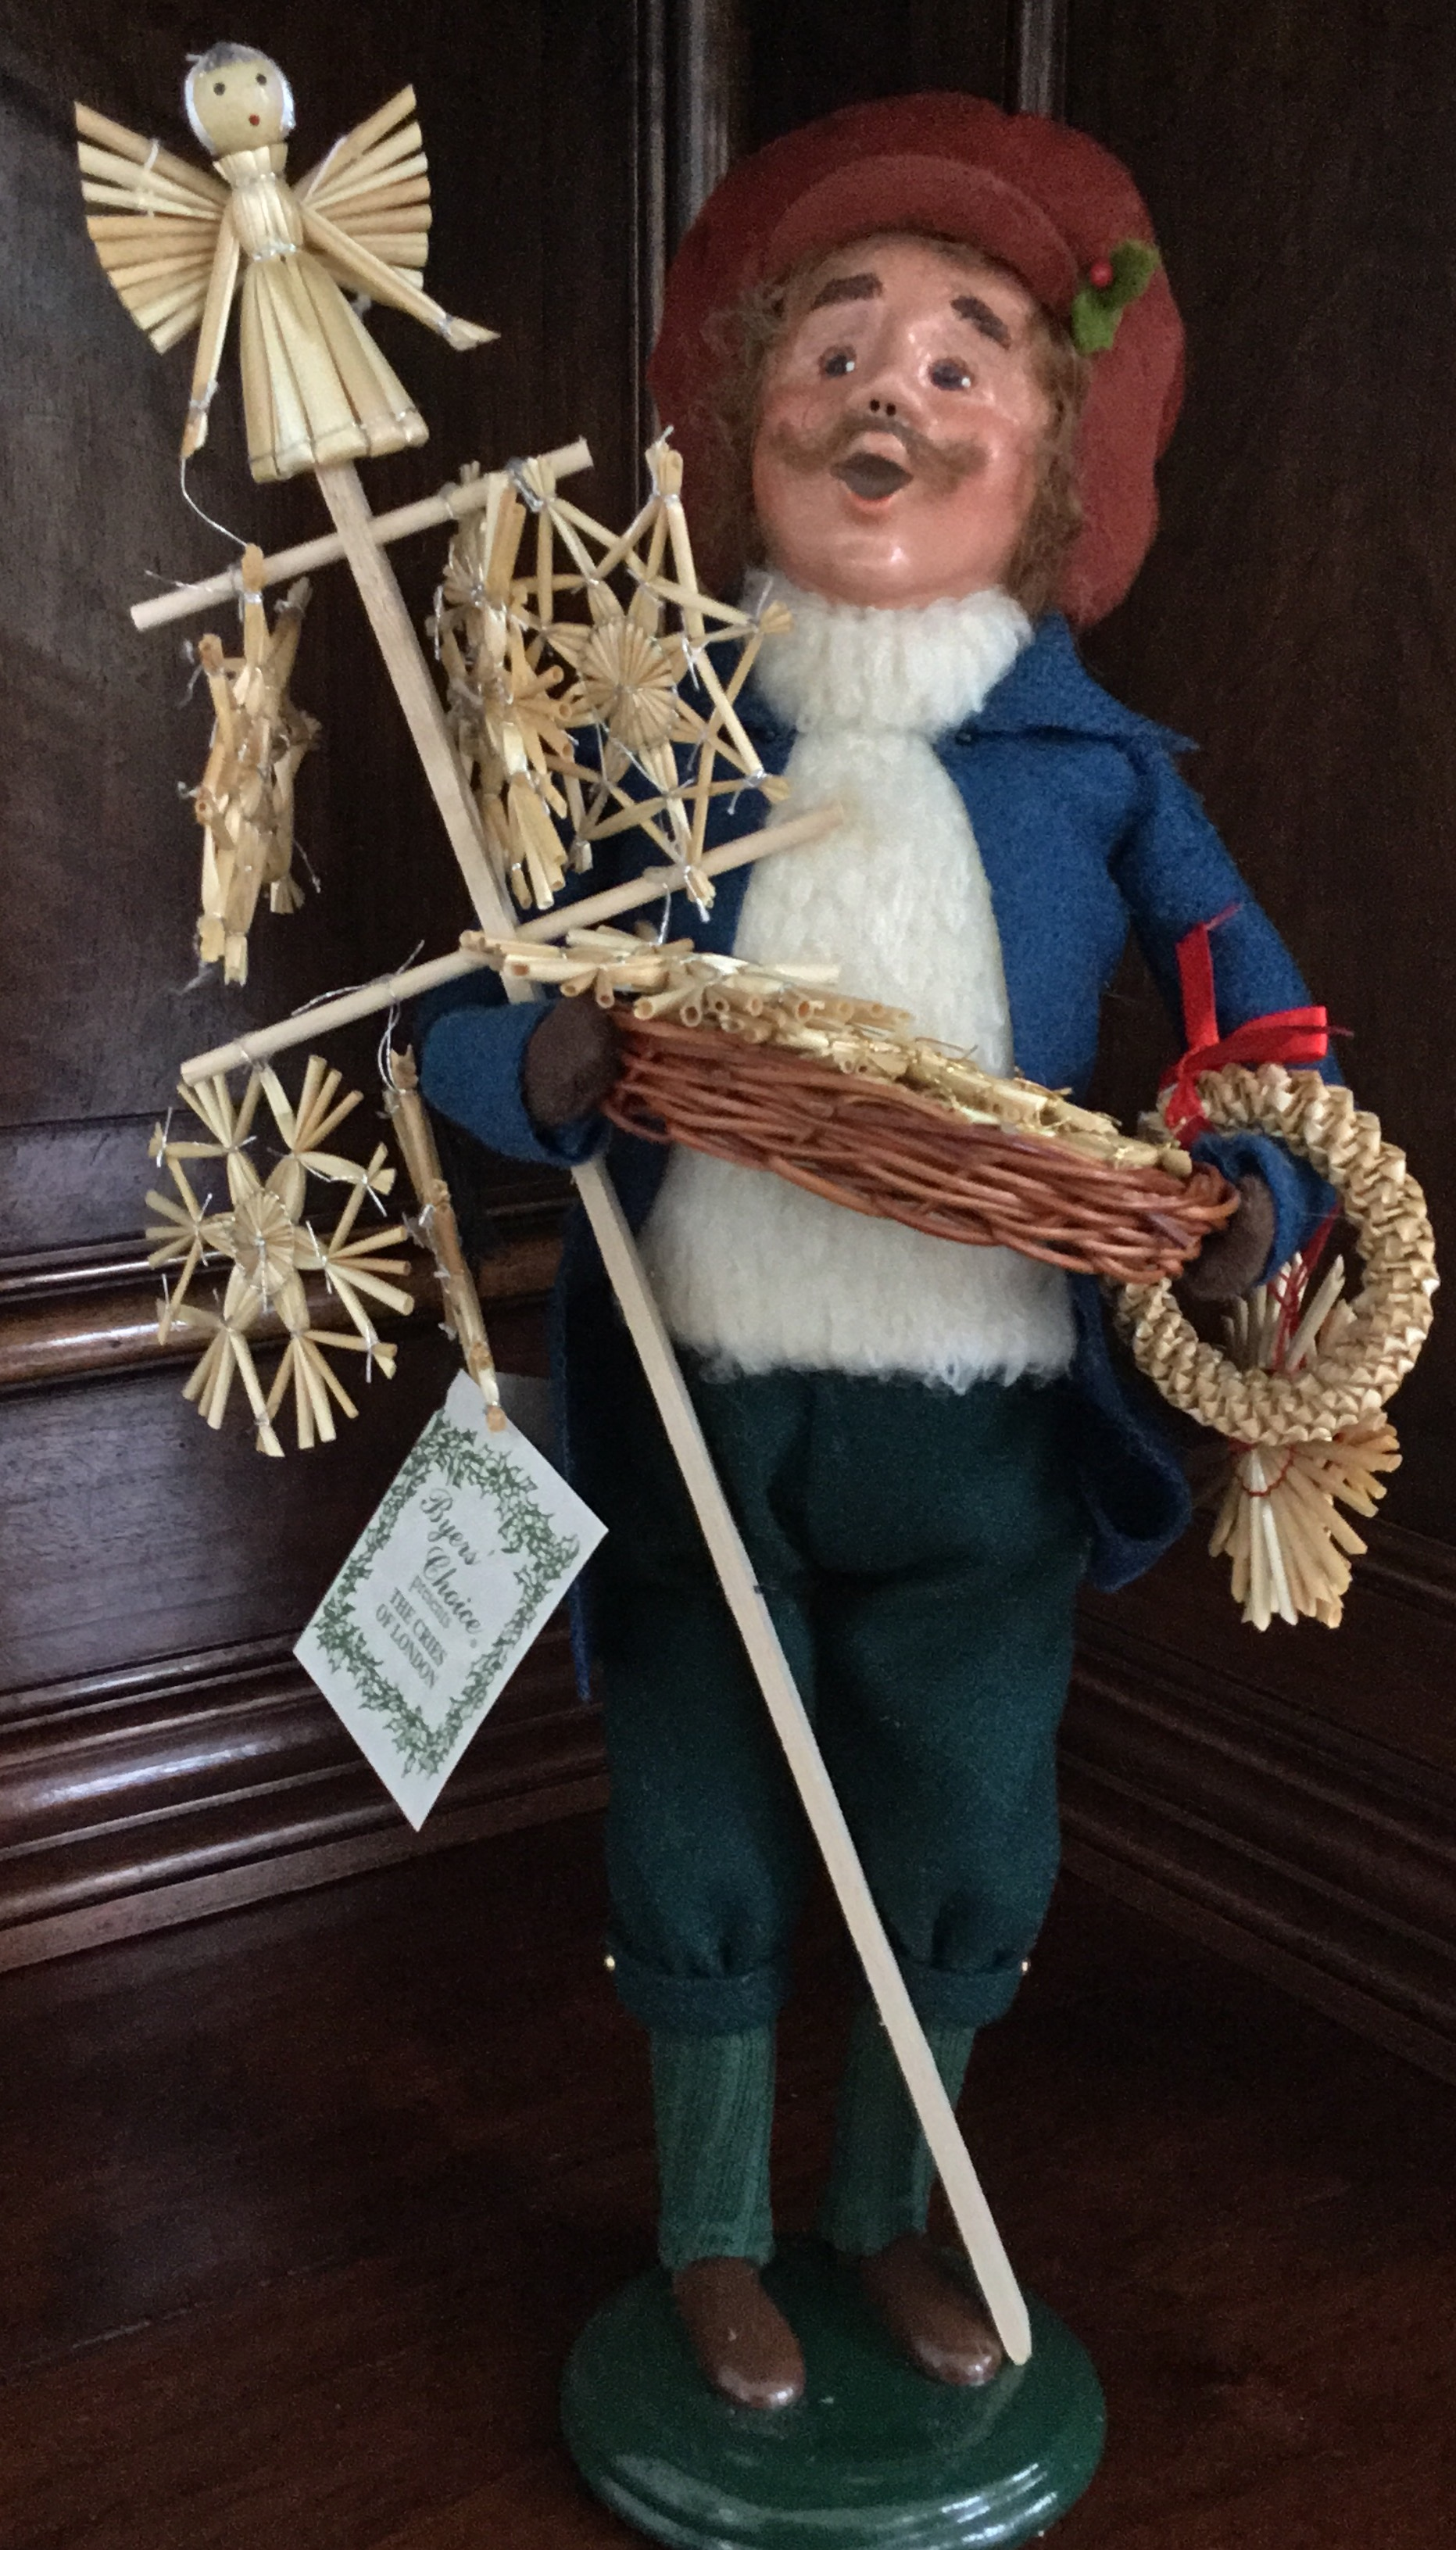 Byers' Choice, Cries of London Straw Toy Vendor